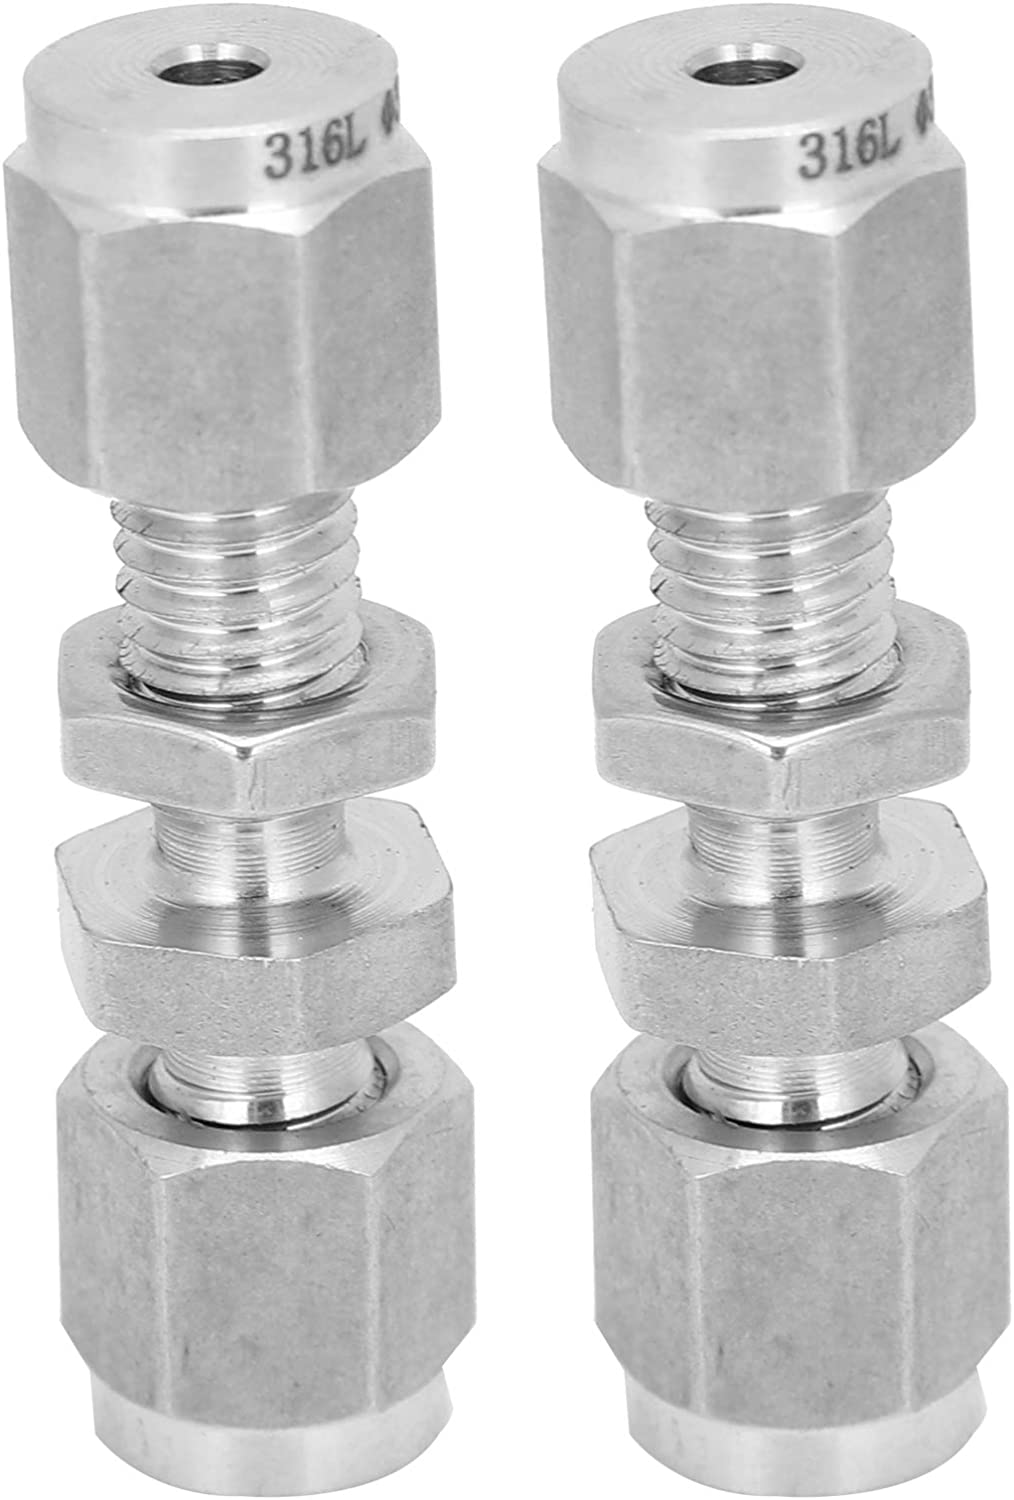 2Pcs Washington Mall New Shipping Free Shipping 316 Stainless Steel Double Fitting Ferrule